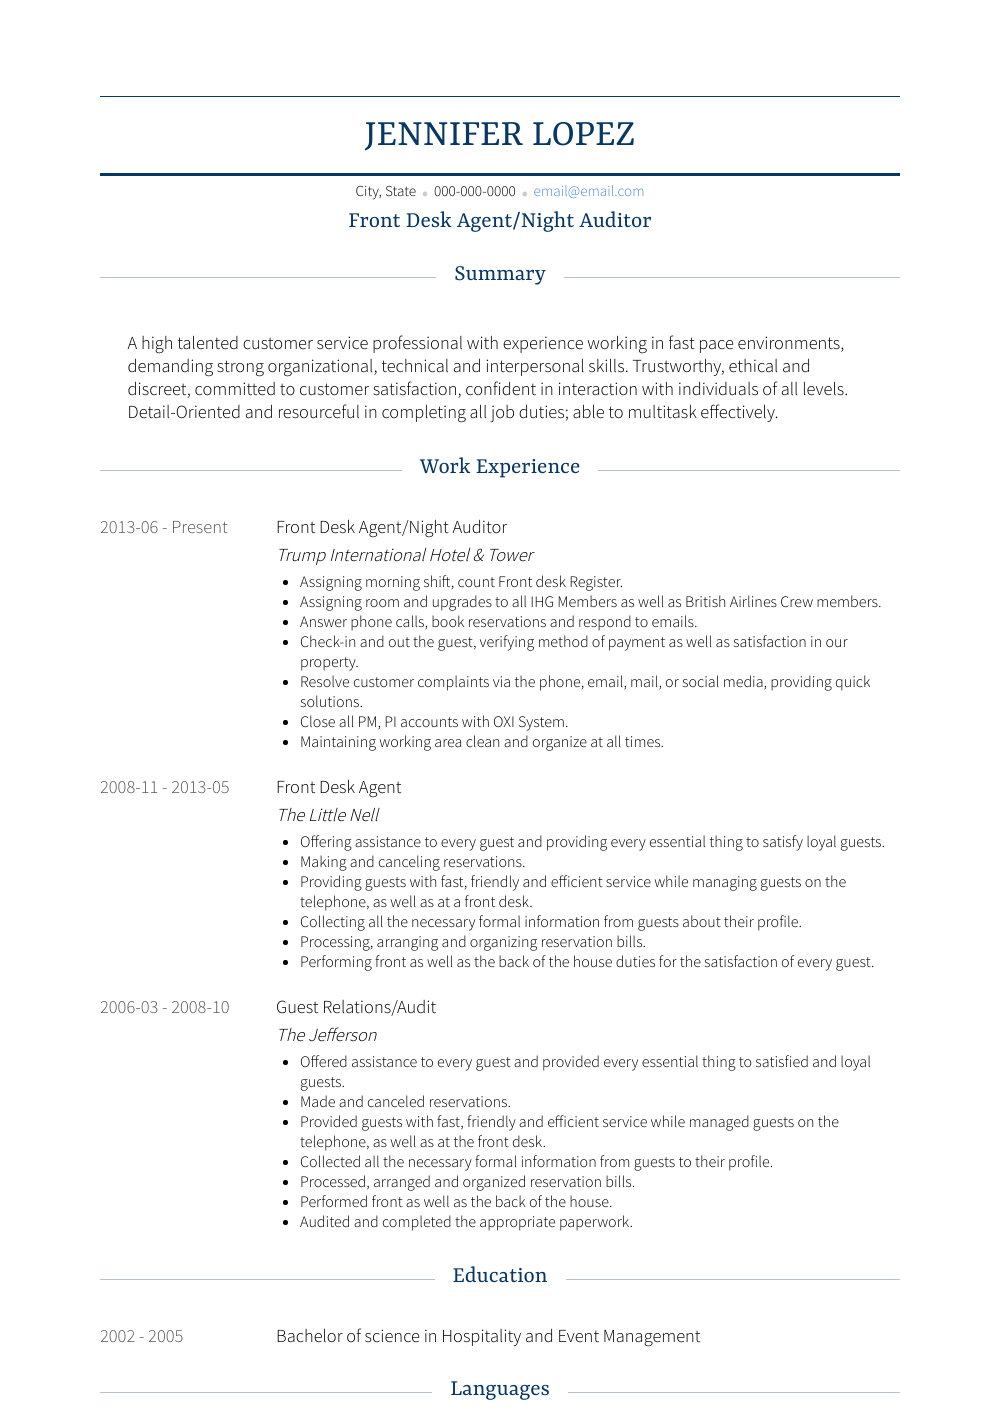 Night Auditor Resume Samples & Templates VisualCV